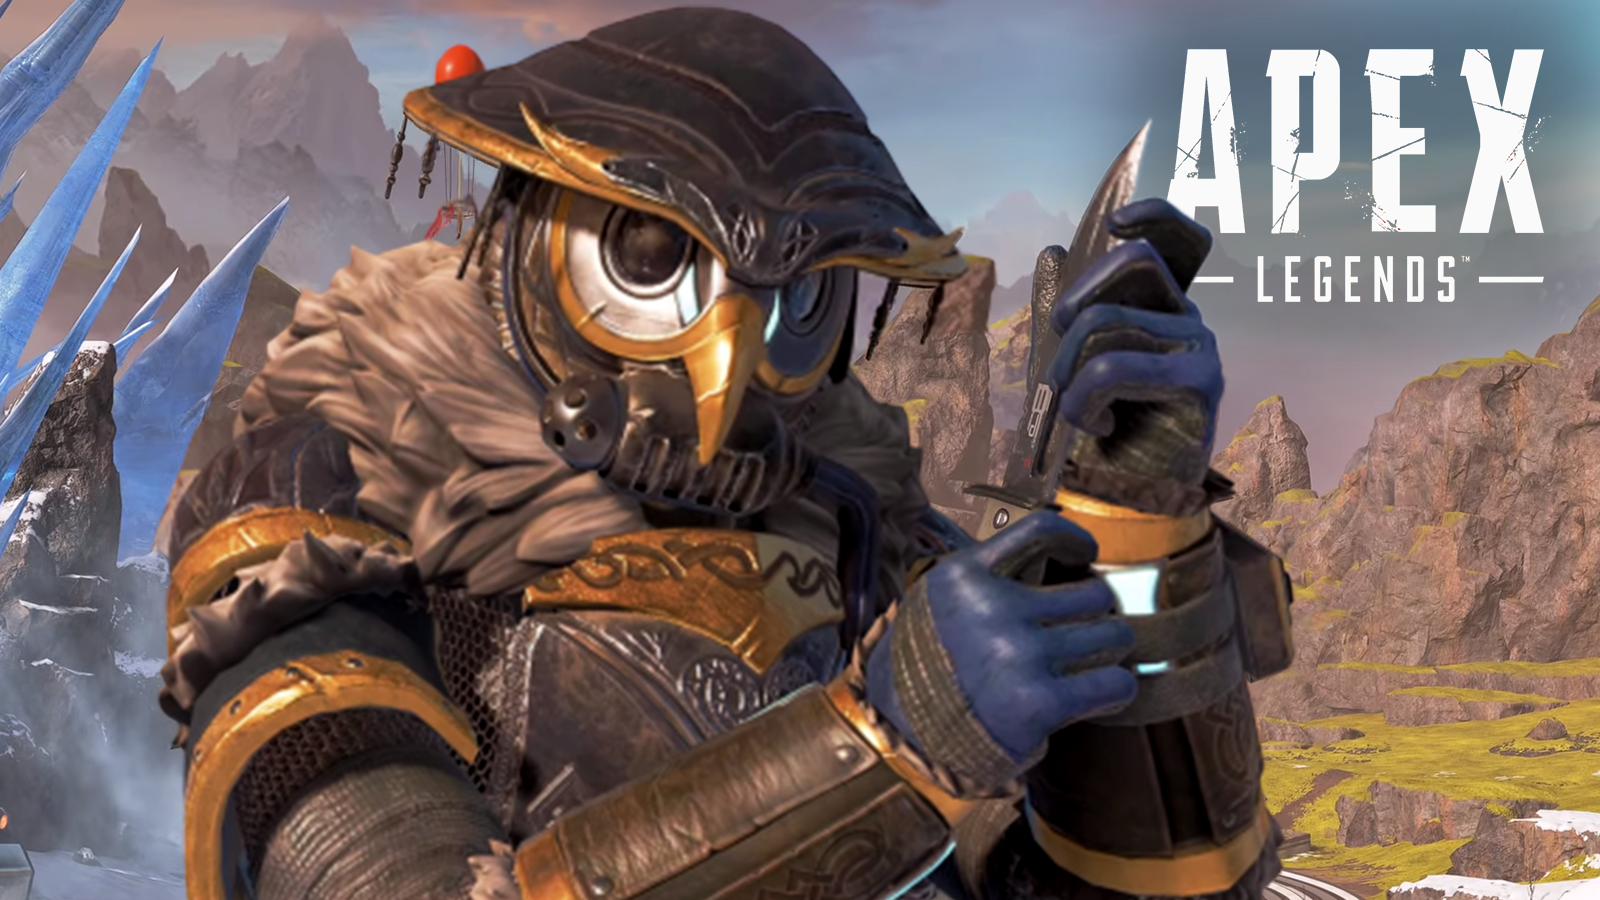 Bloodhound apparently has The Beatles hidden in her old and new Apex Legends lore.